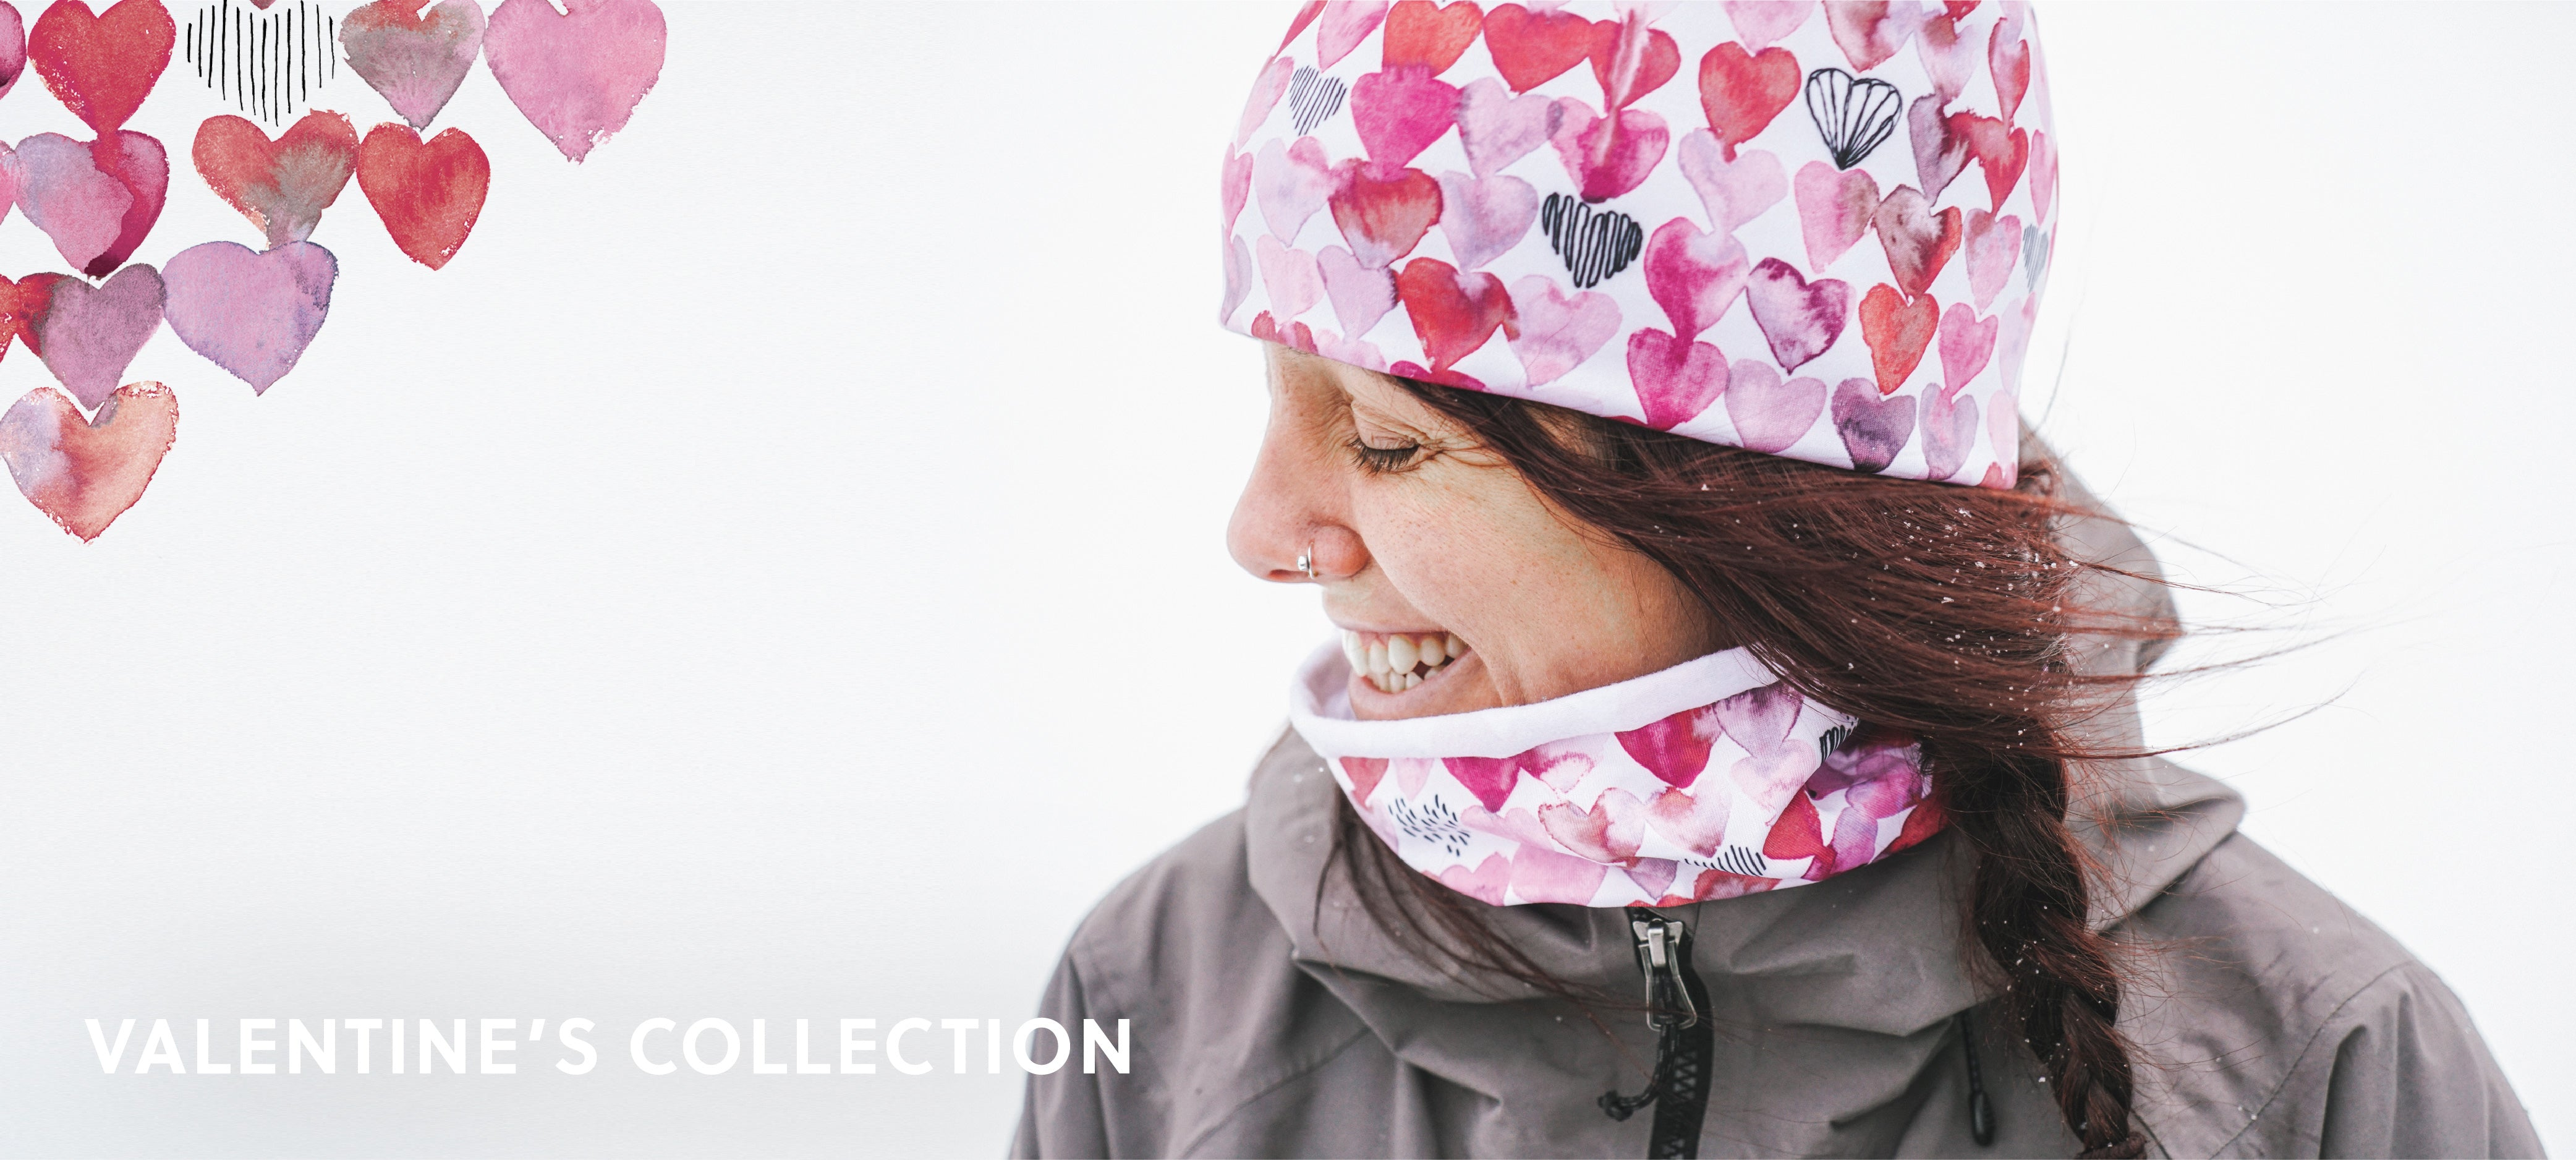 Skida | Shop the Valentine's Collection